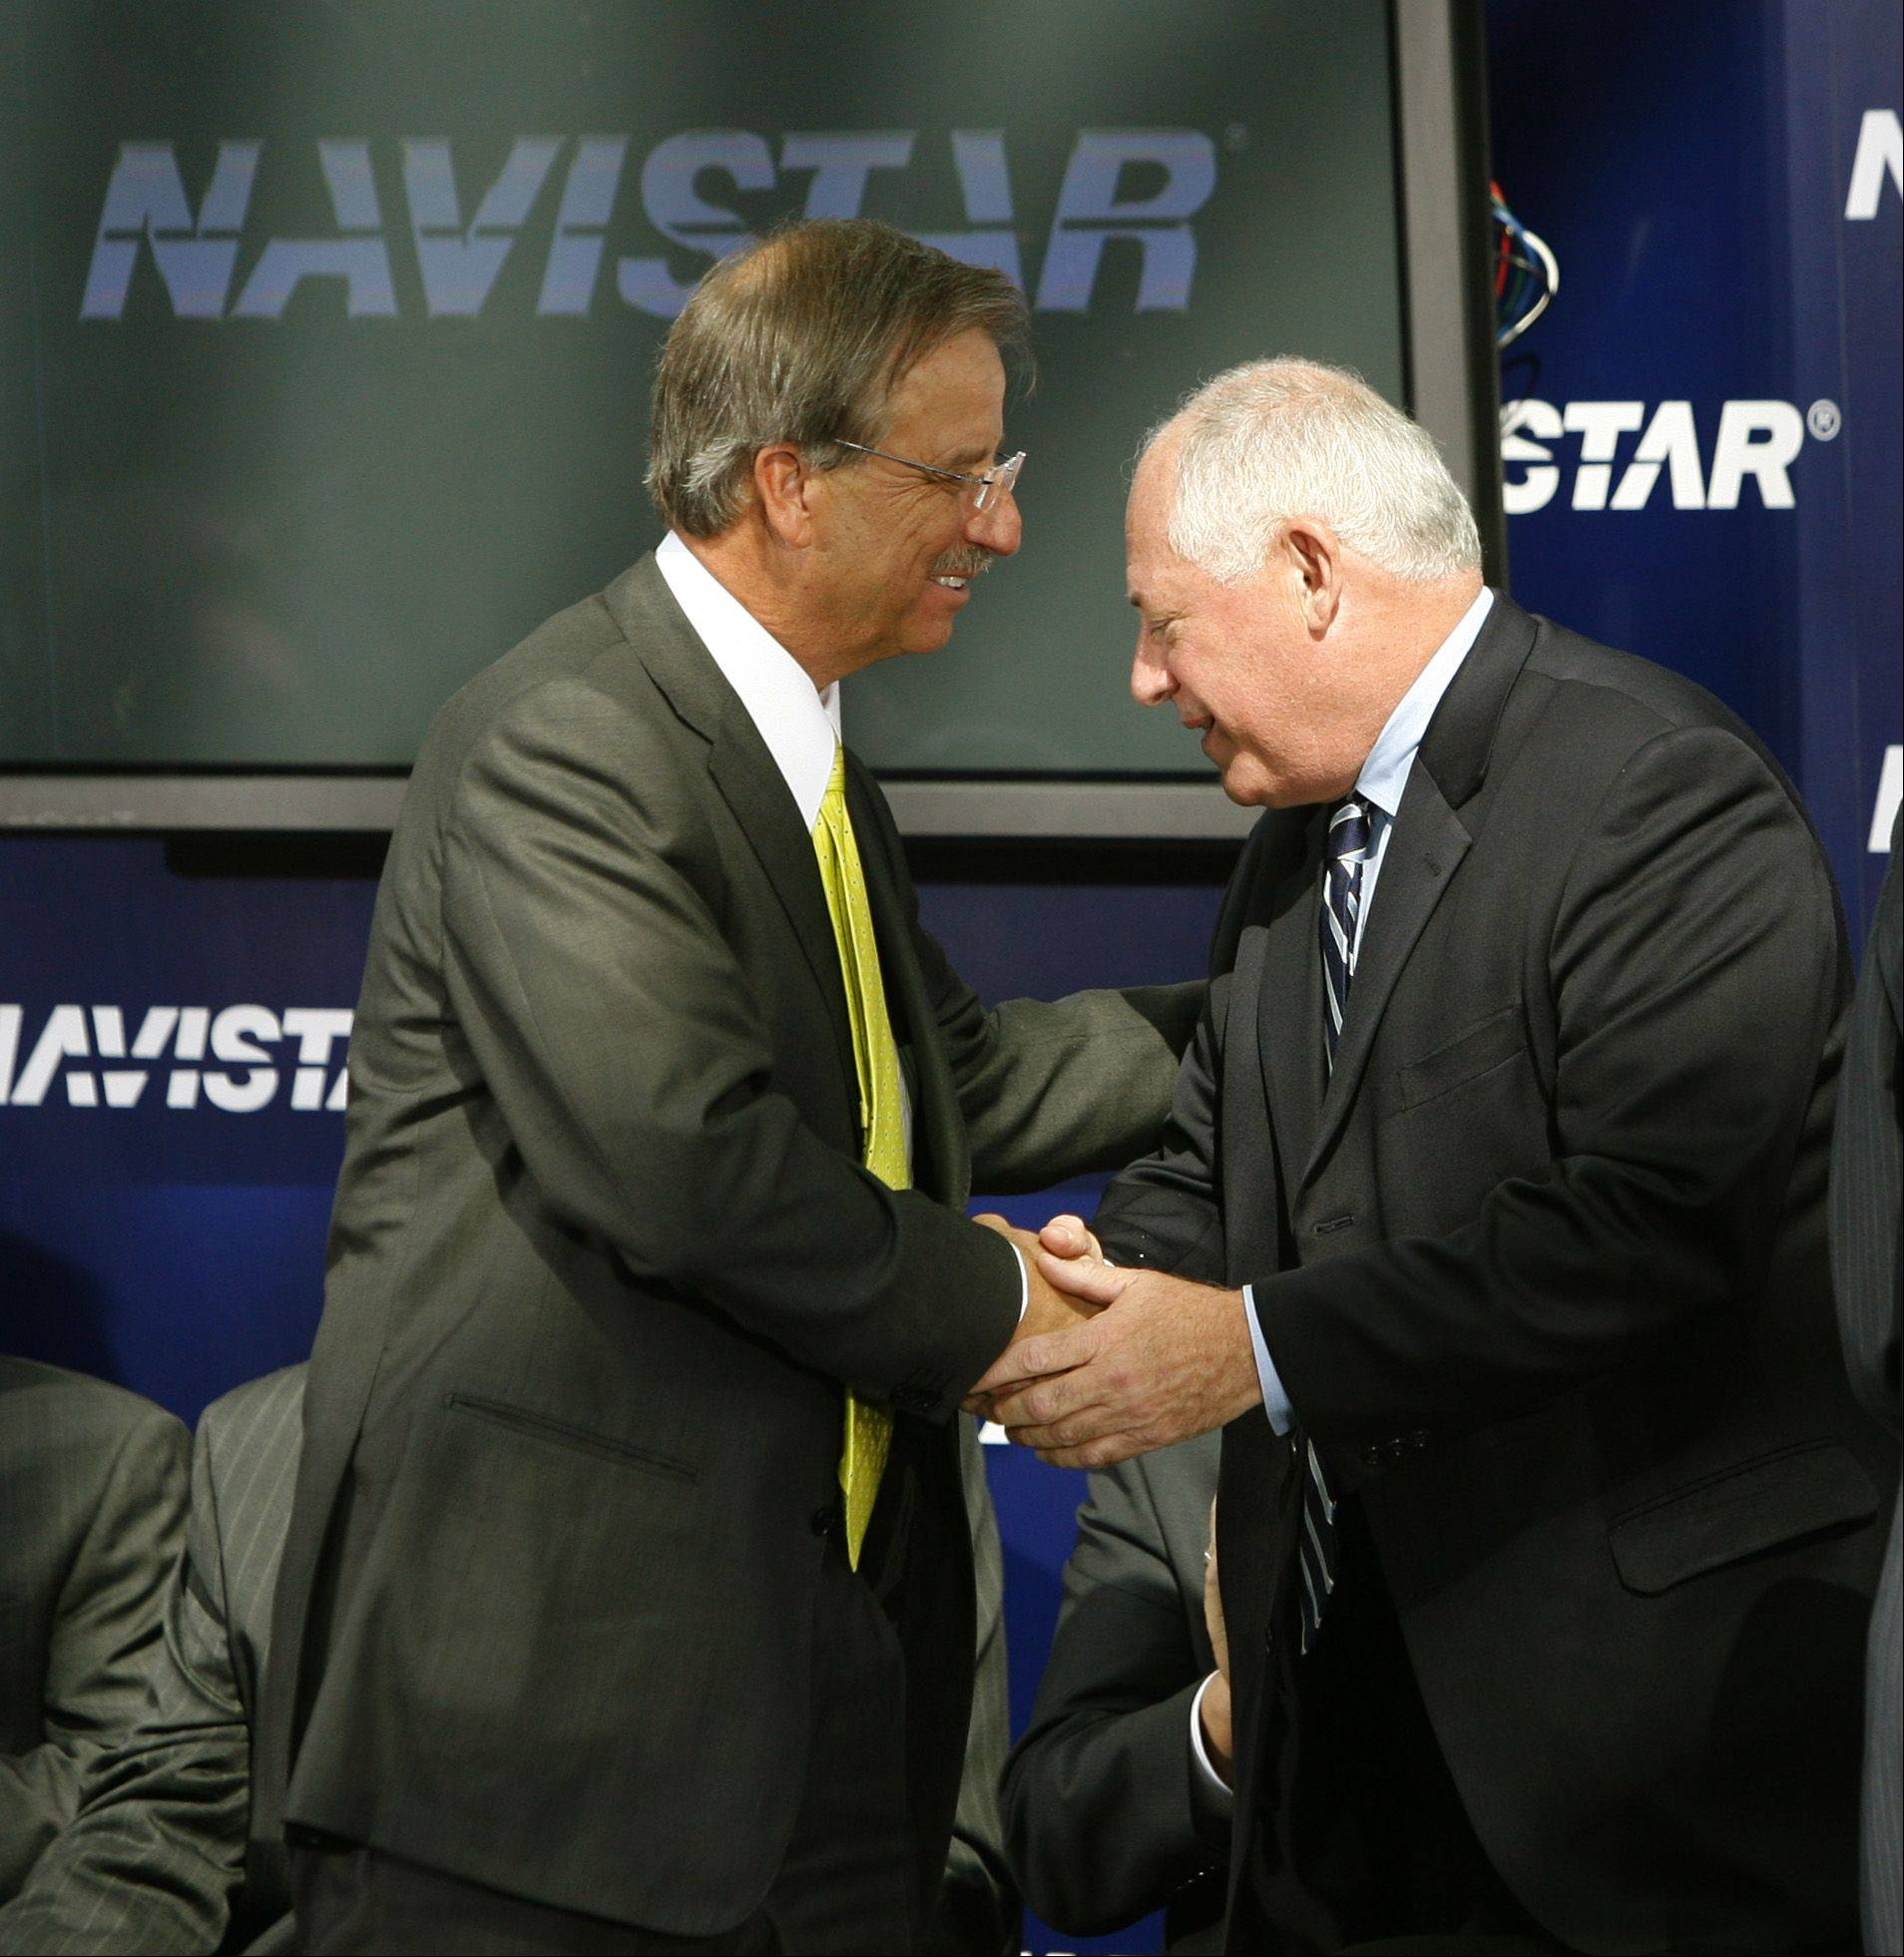 Navistar CEO to lead Quinn exports group